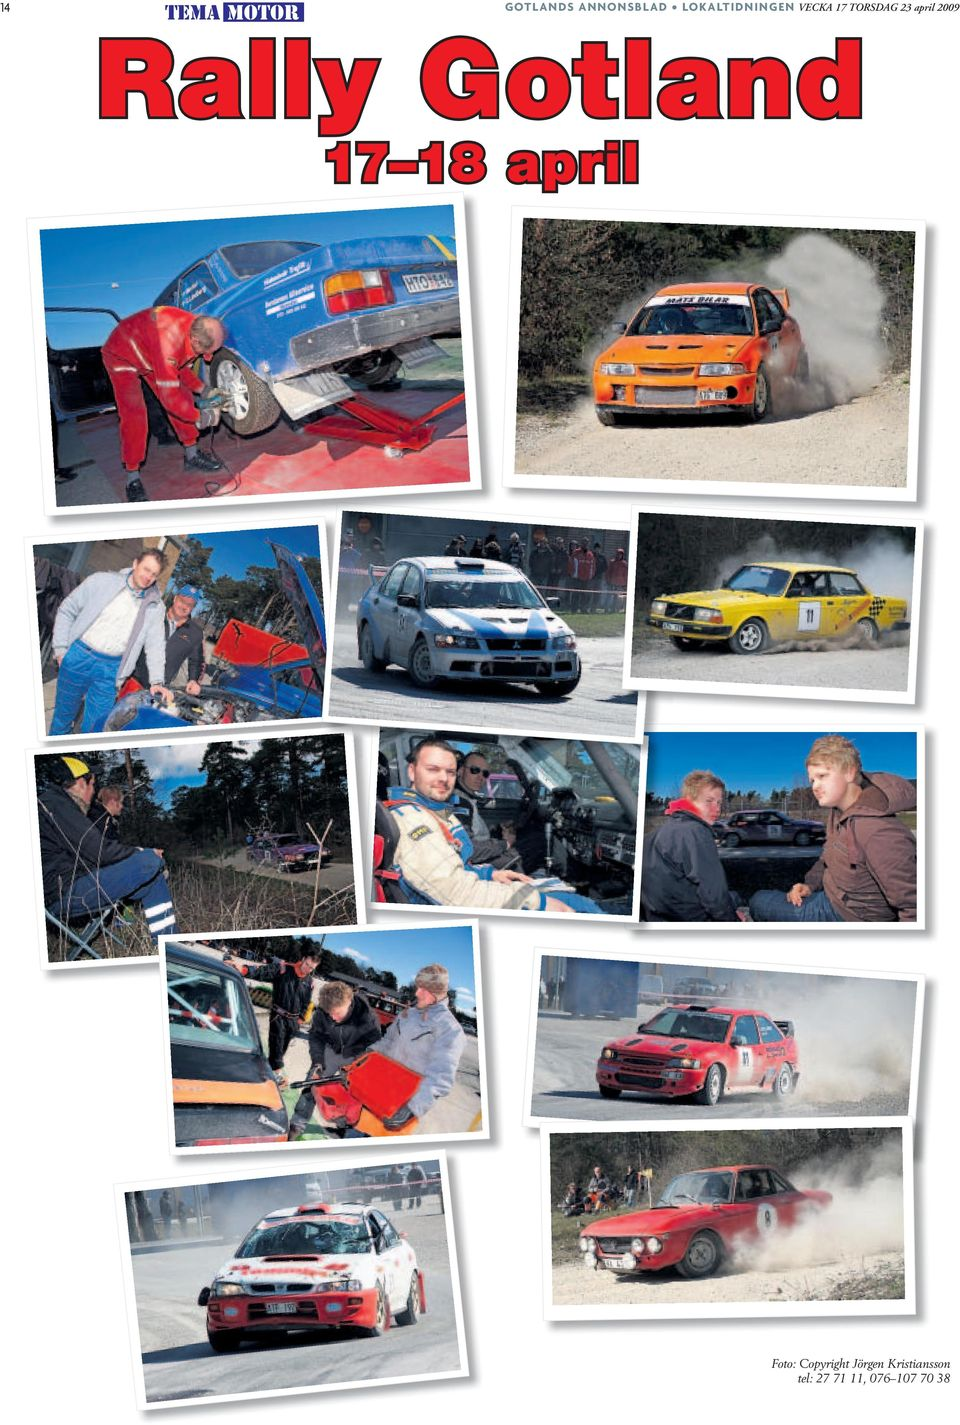 Rally Gotland 17 18 april Foto: Copyright